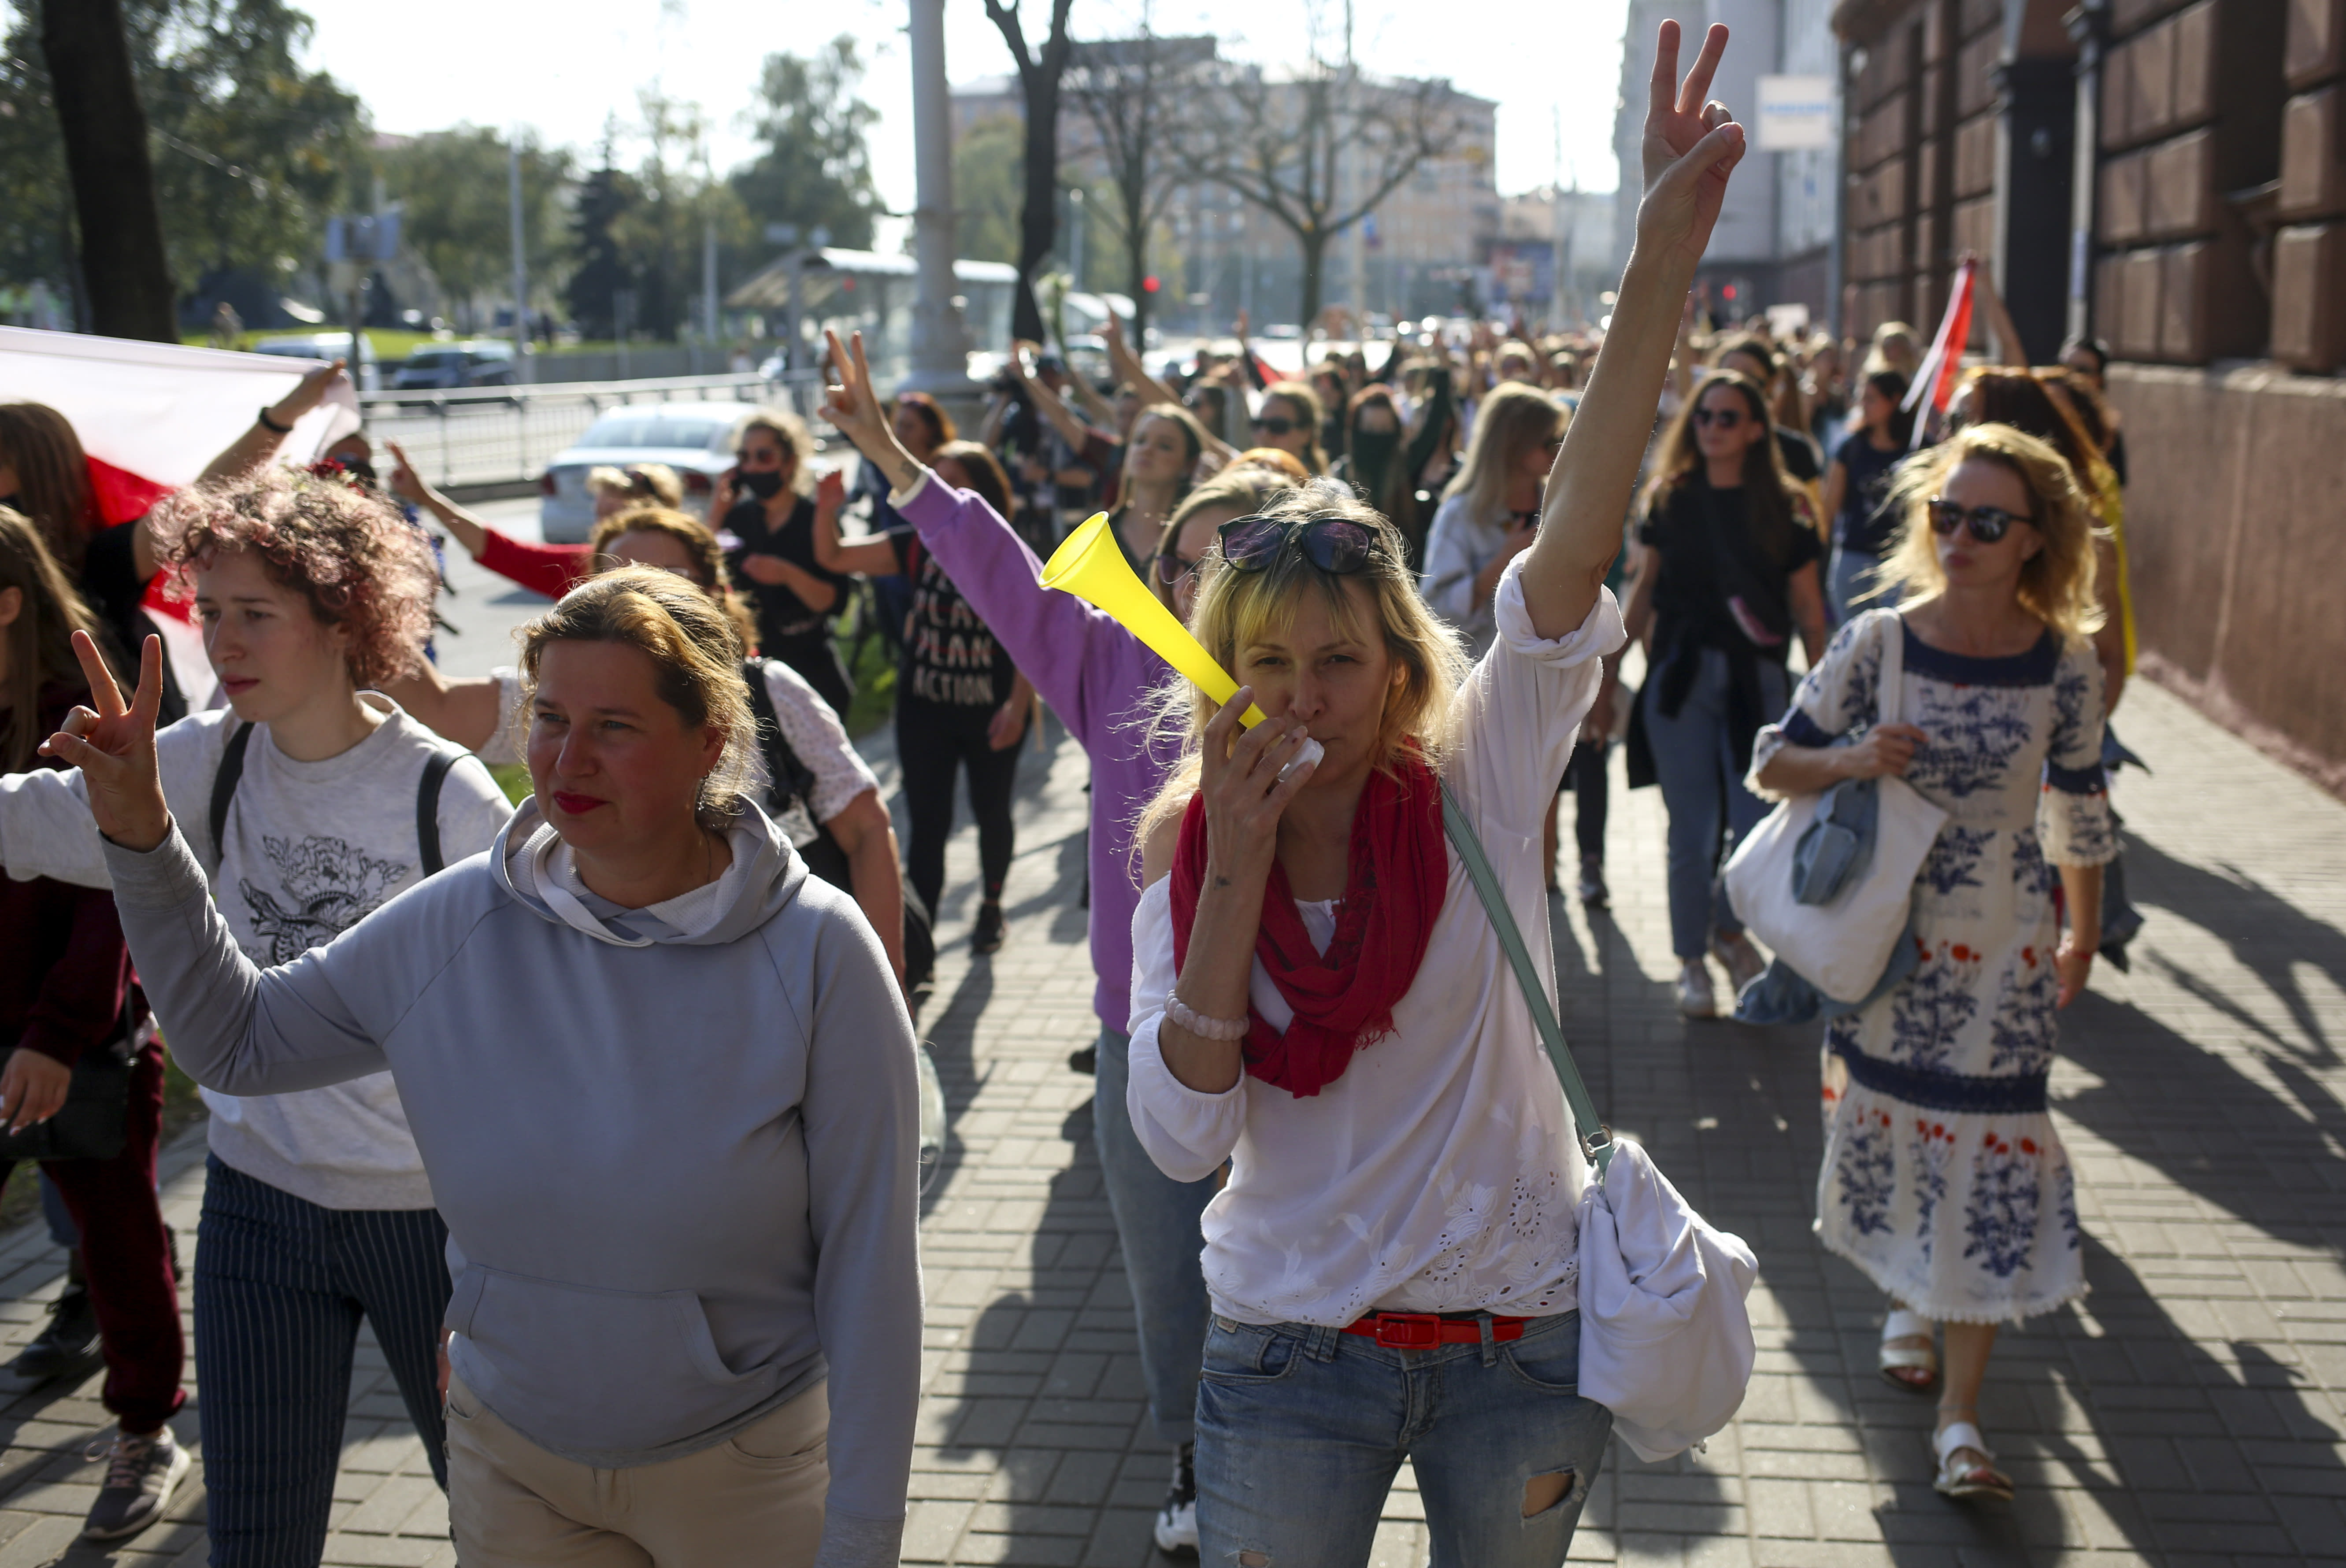 Belarusian women attend an opposition rally to protest the official presidential election results in Minsk, Belarus, Saturday, Sept. 26, 2020. Hundreds of thousands of Belarusians have been protesting daily since the Aug. 9 presidential election. (AP Photo/TUT.by)